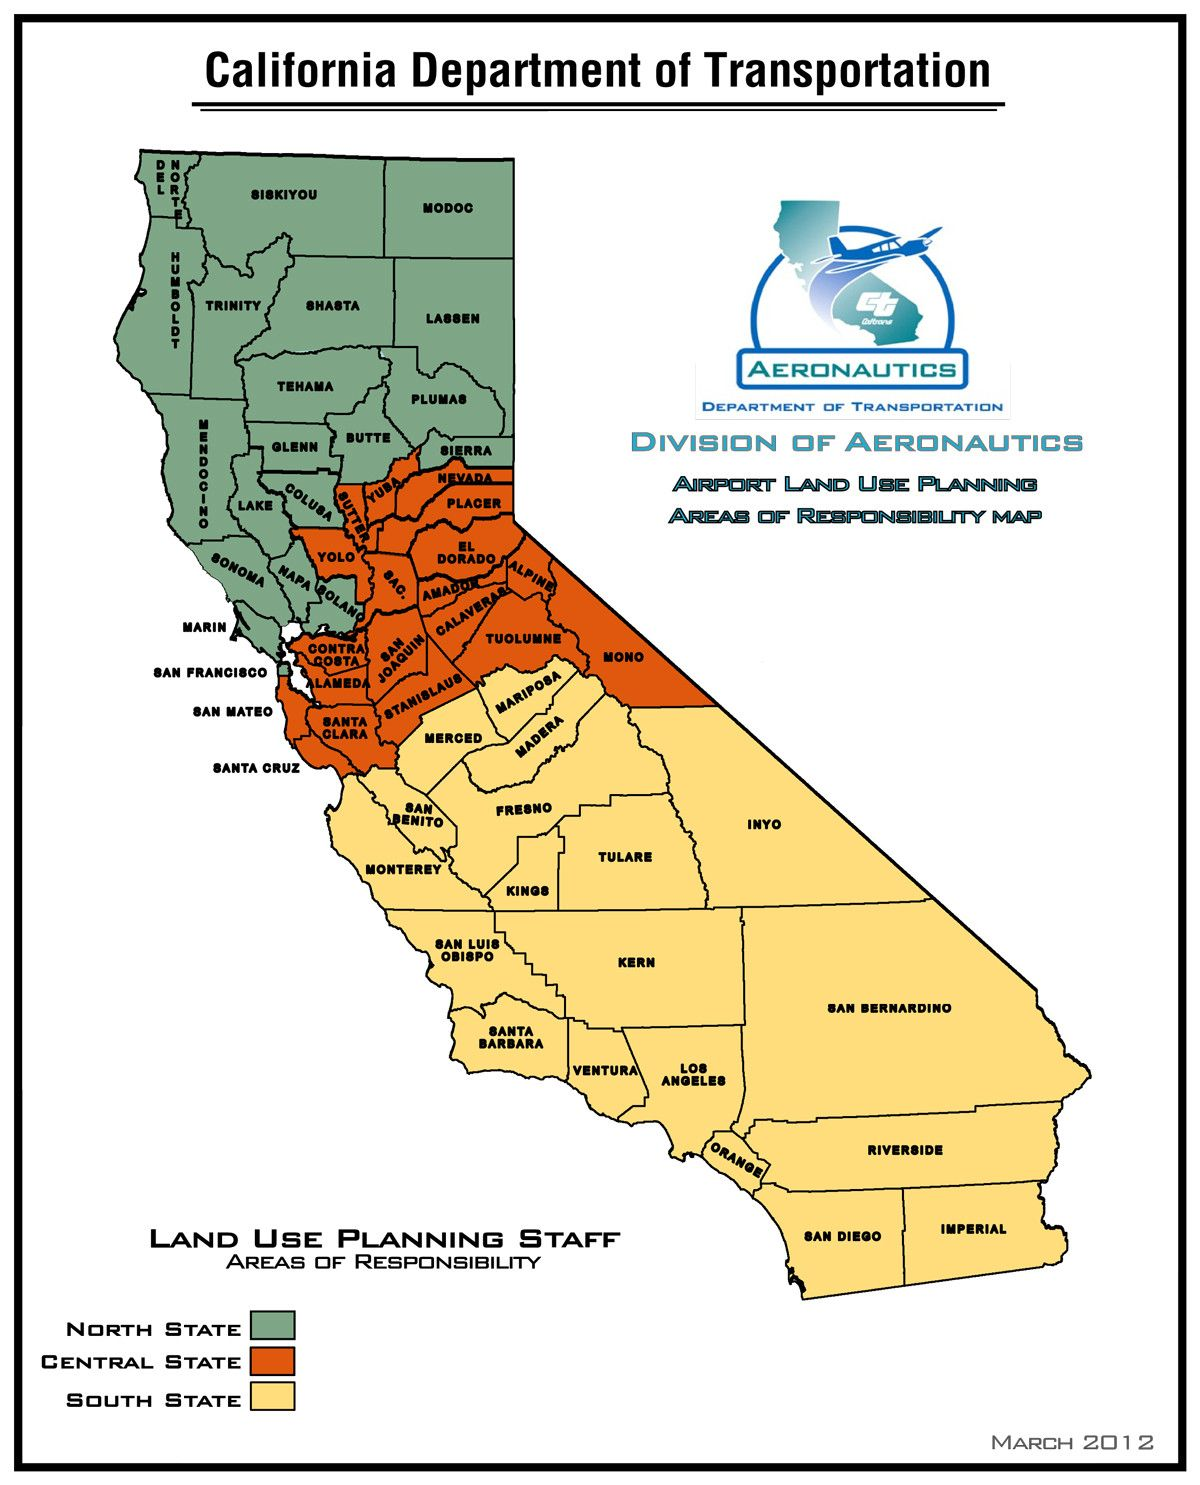 Caltrans map of California showing NorCal Central and SoCal